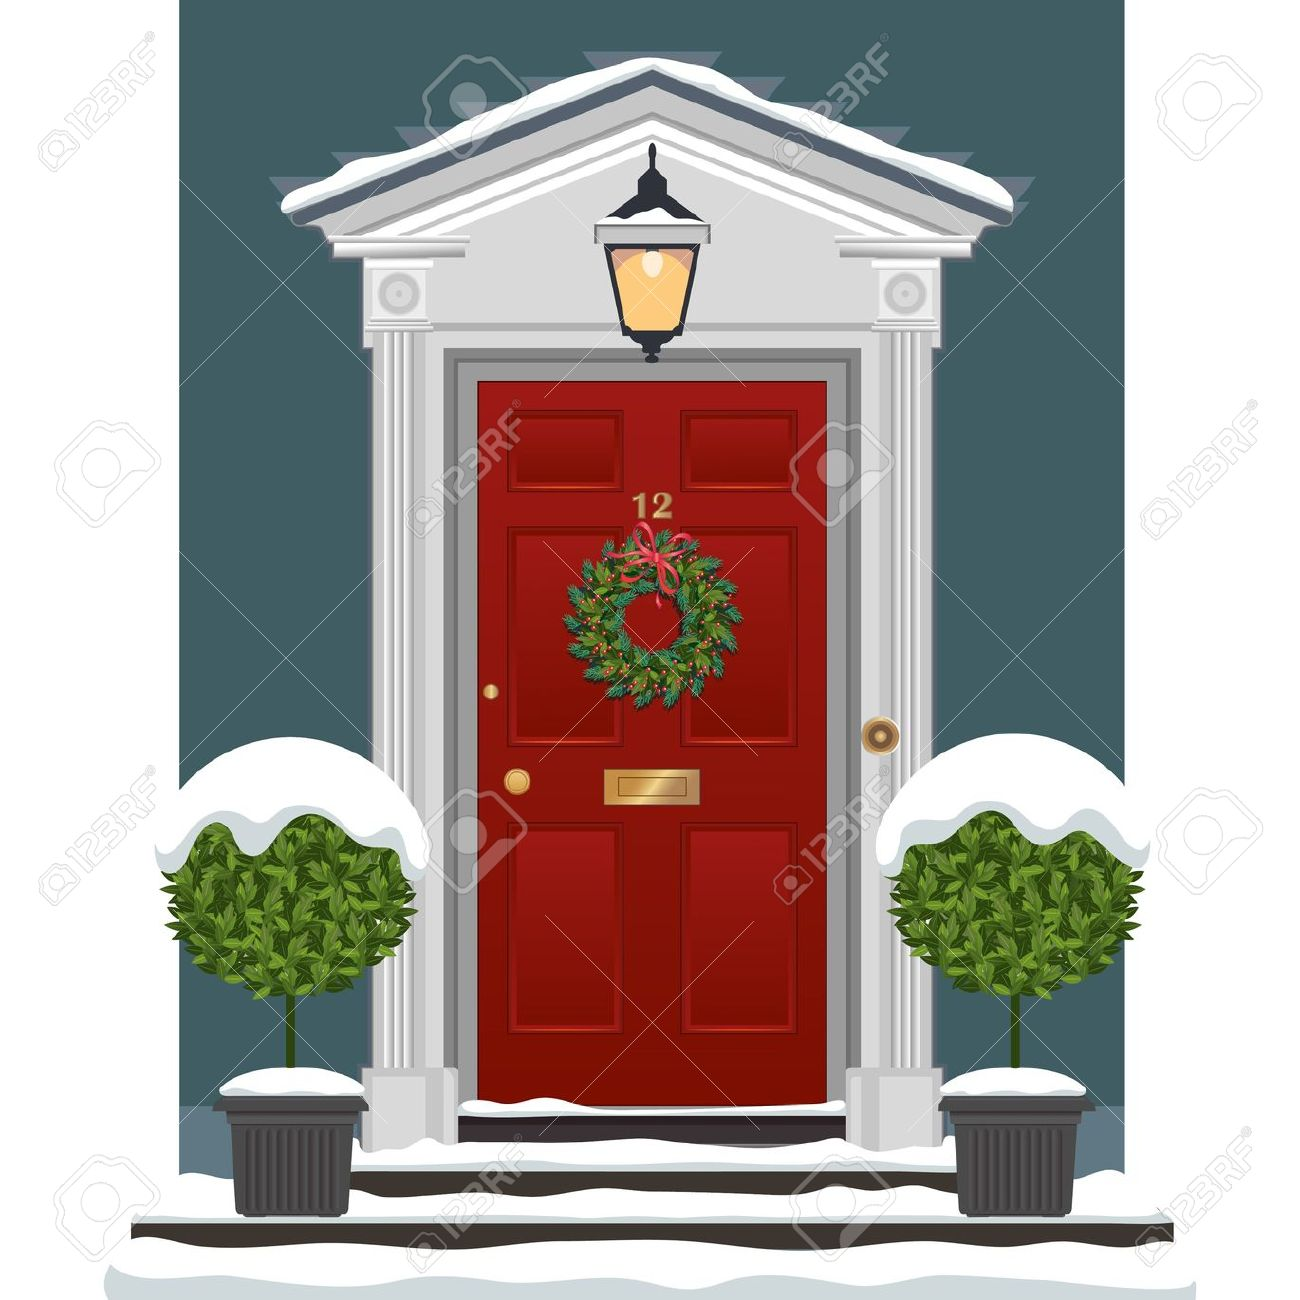 Red Painted Front Door With Christmas Wreath In The Snow. Royalty.